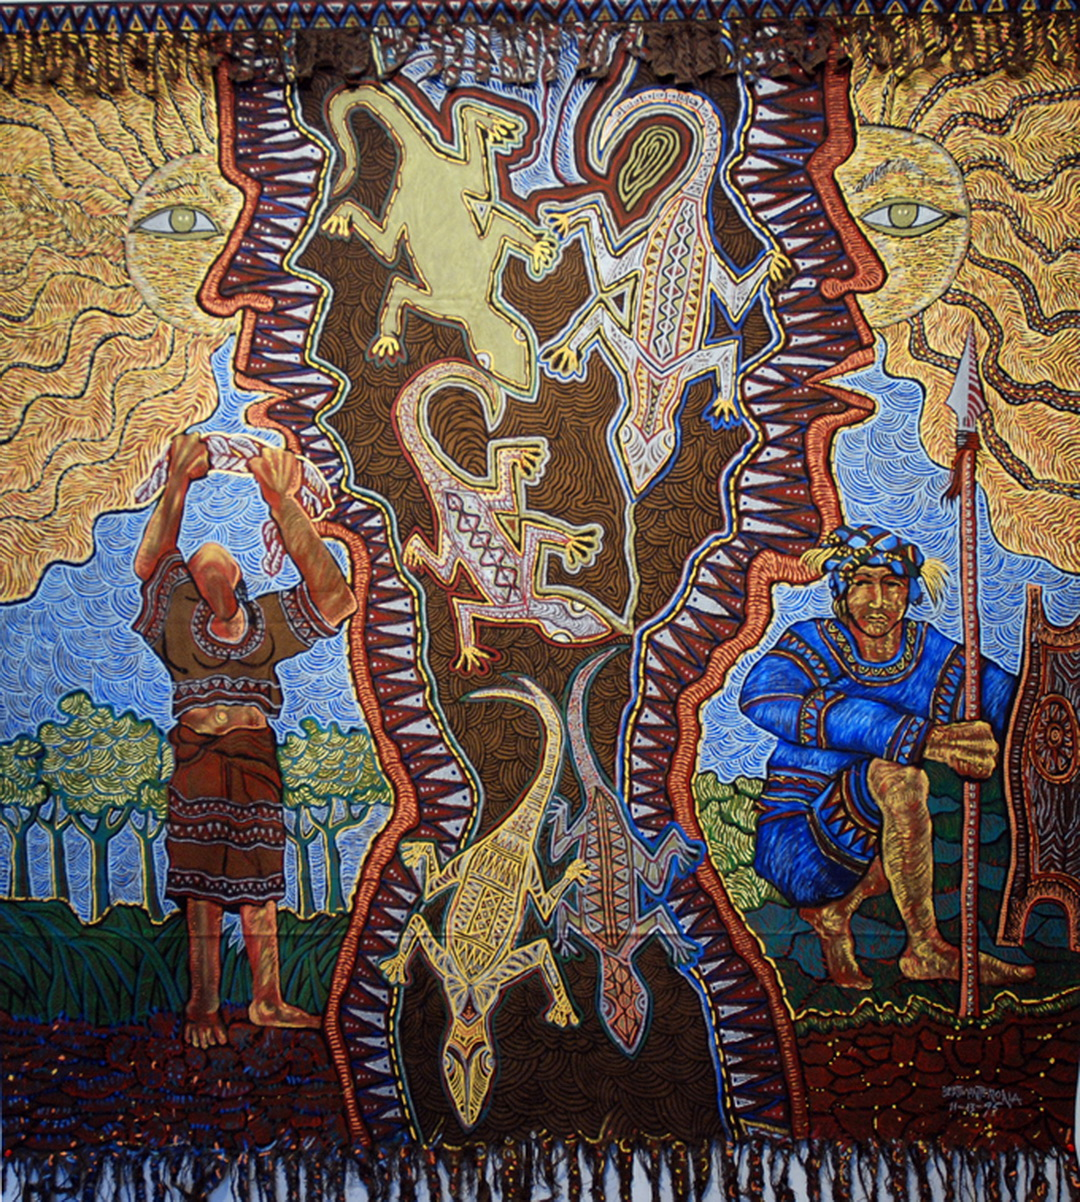 Thanks Giving, Mixed media, 184 x 204 cm, (1995)